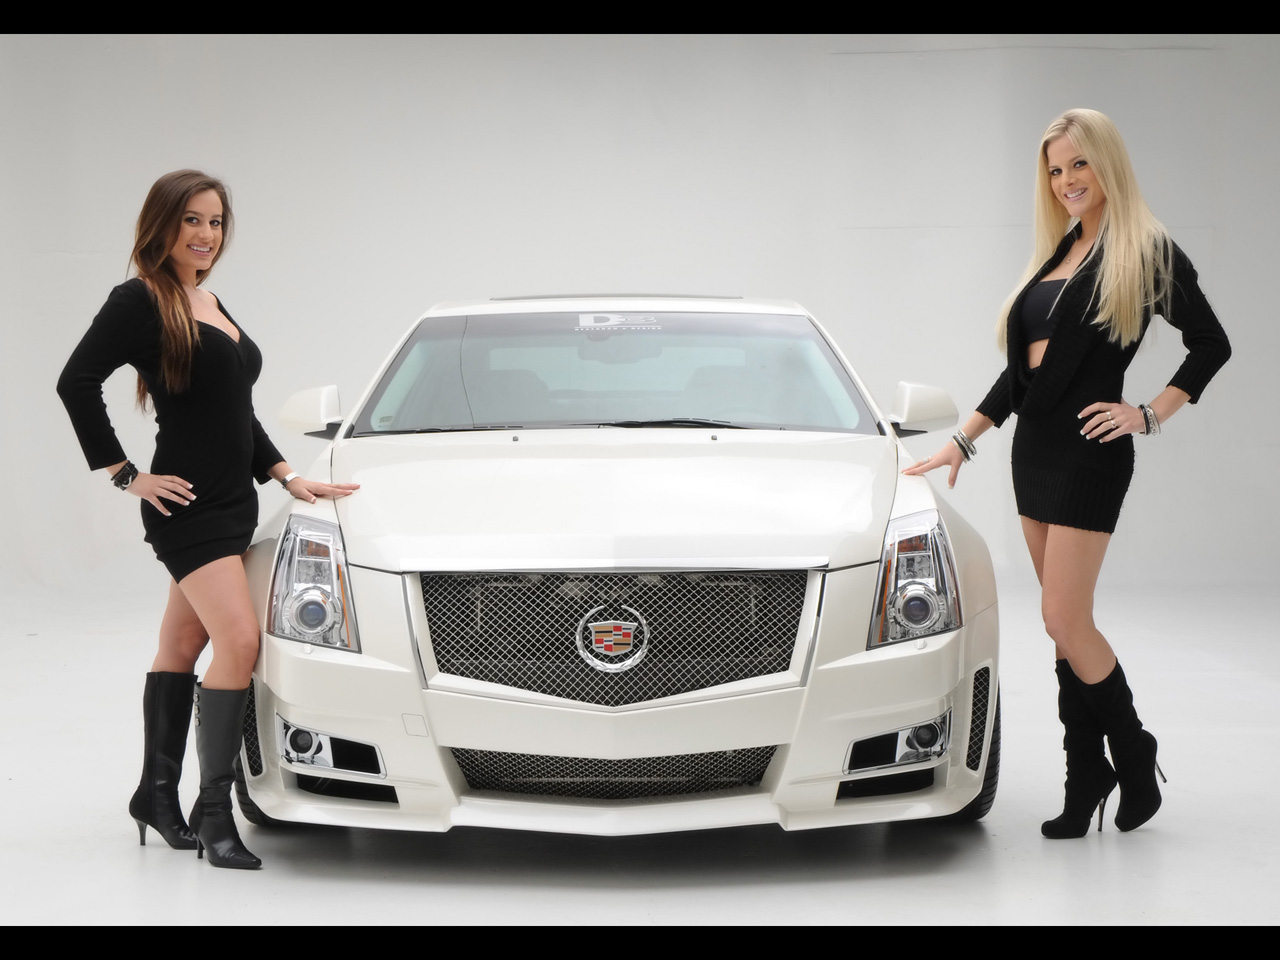 D3 Cadillac Cts Merci Les Girls